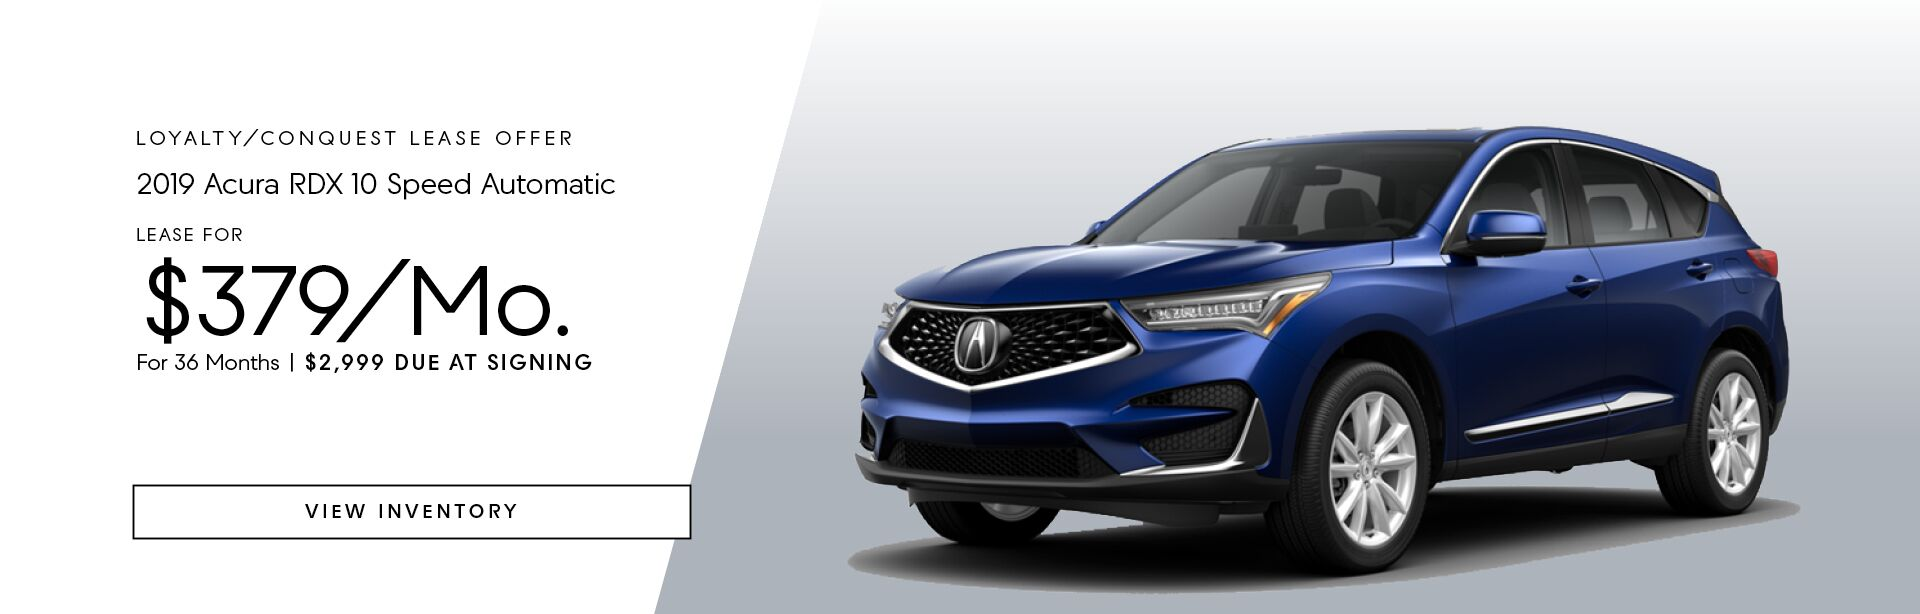 2019 Acura RDX 10 Speed Automatic